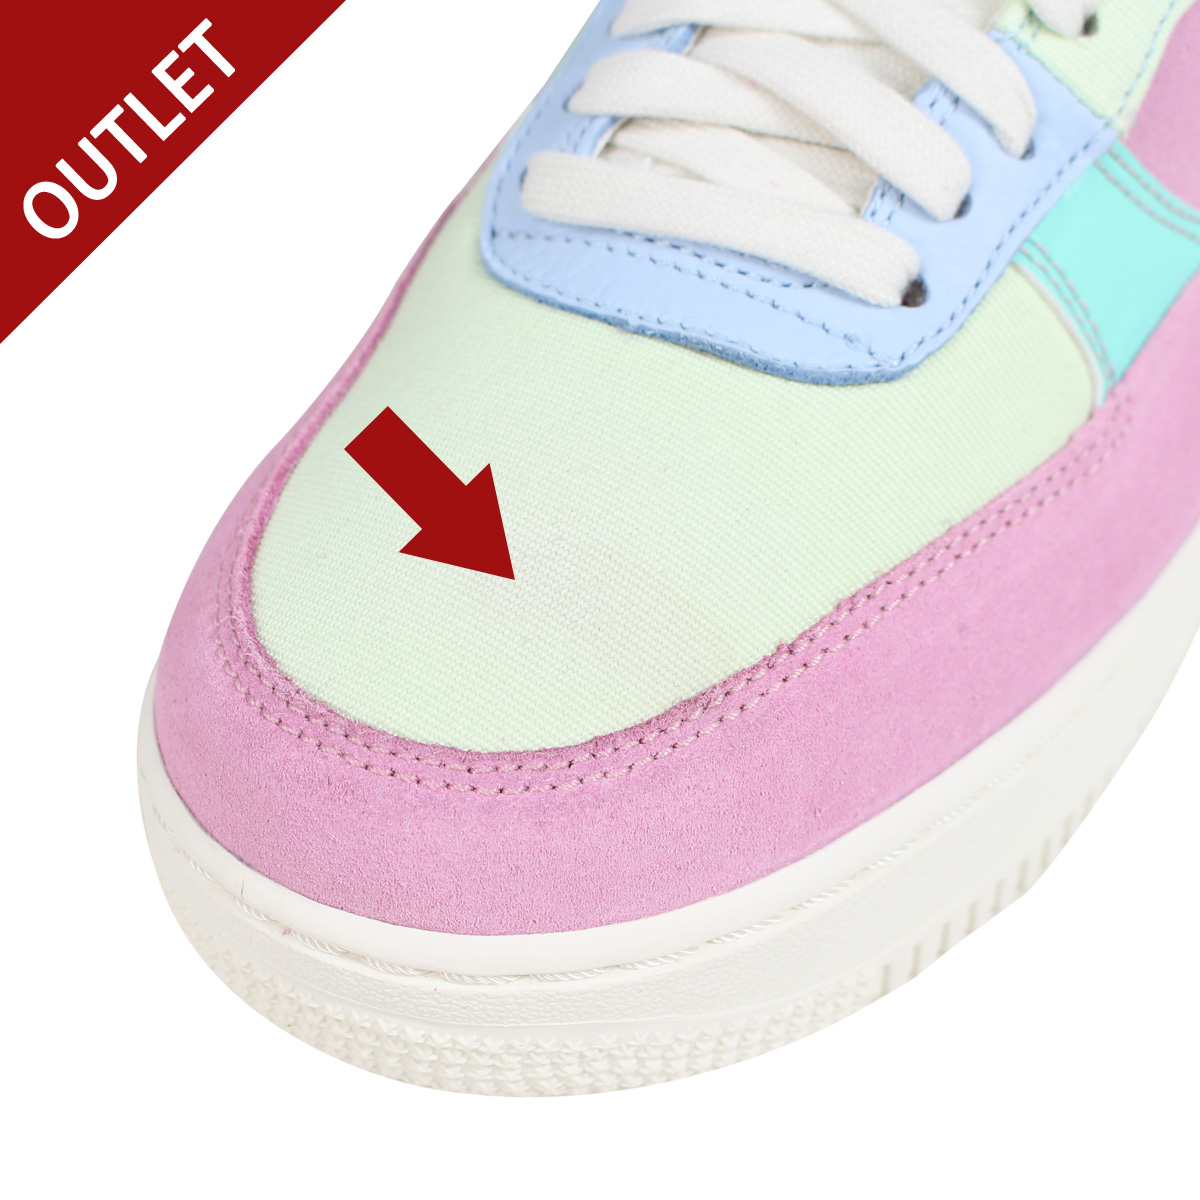 f9b447eeb69e Nike NIKE air force 1 sneakers men AIR FORCE 1 LOW EASTER EGG pink AH8462- 400  load planned Shinnyu load in reservation product 2 18 containing    returned ...